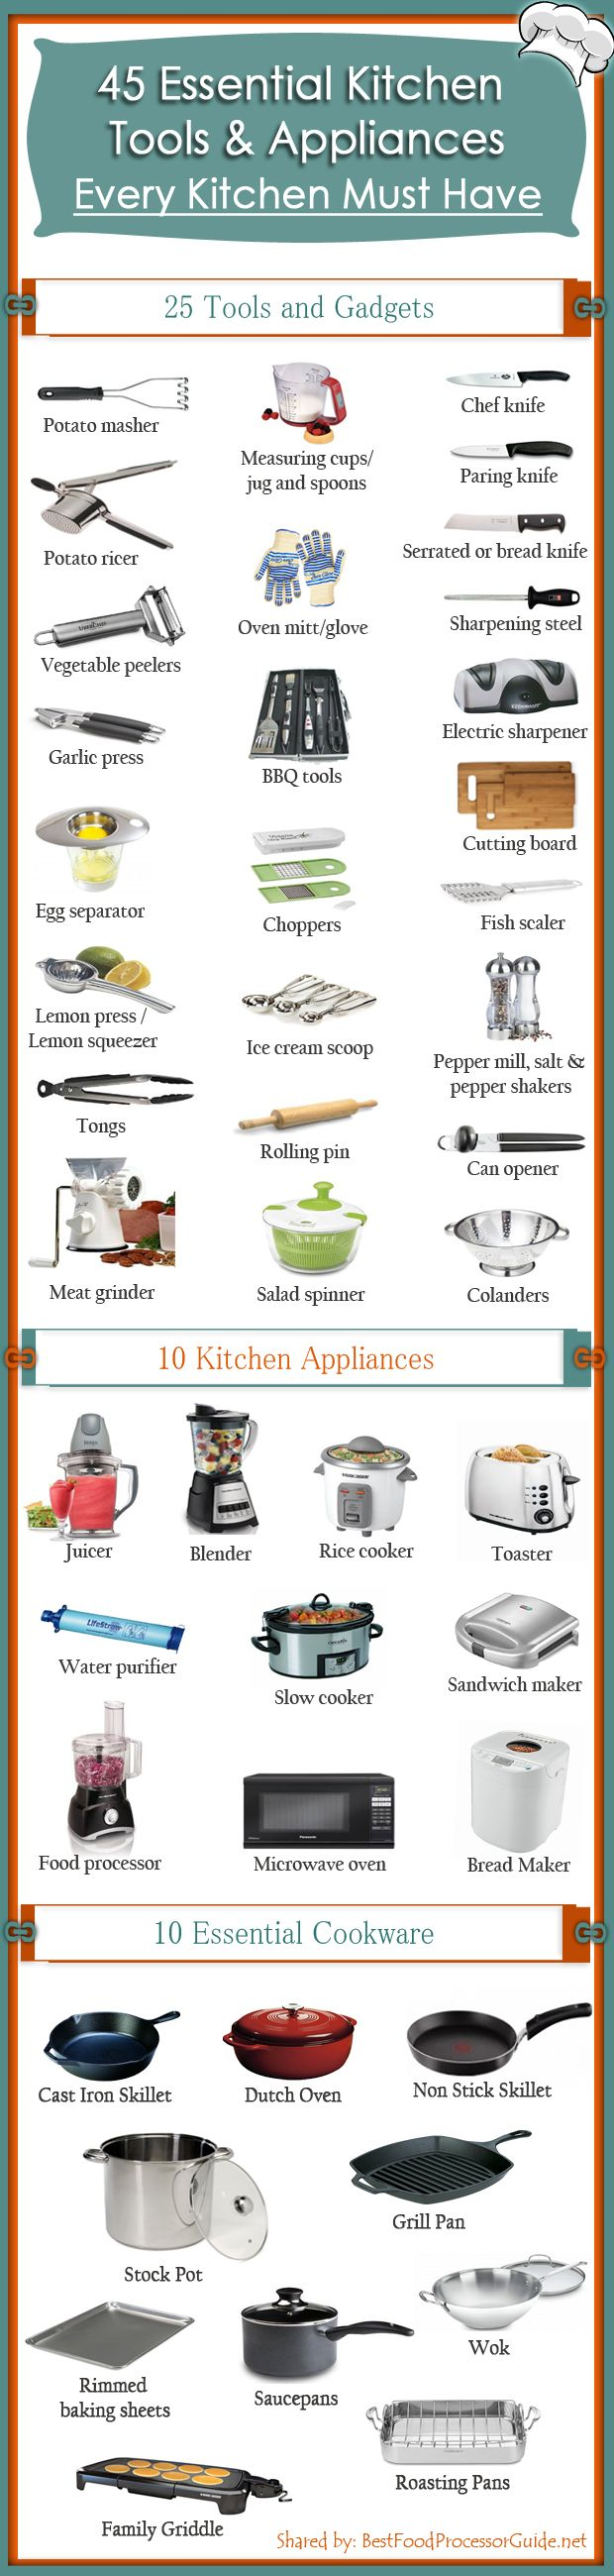 We Want To Create One Of The Best Kitchen Tools And Gadgets, Appliances,  Cookware